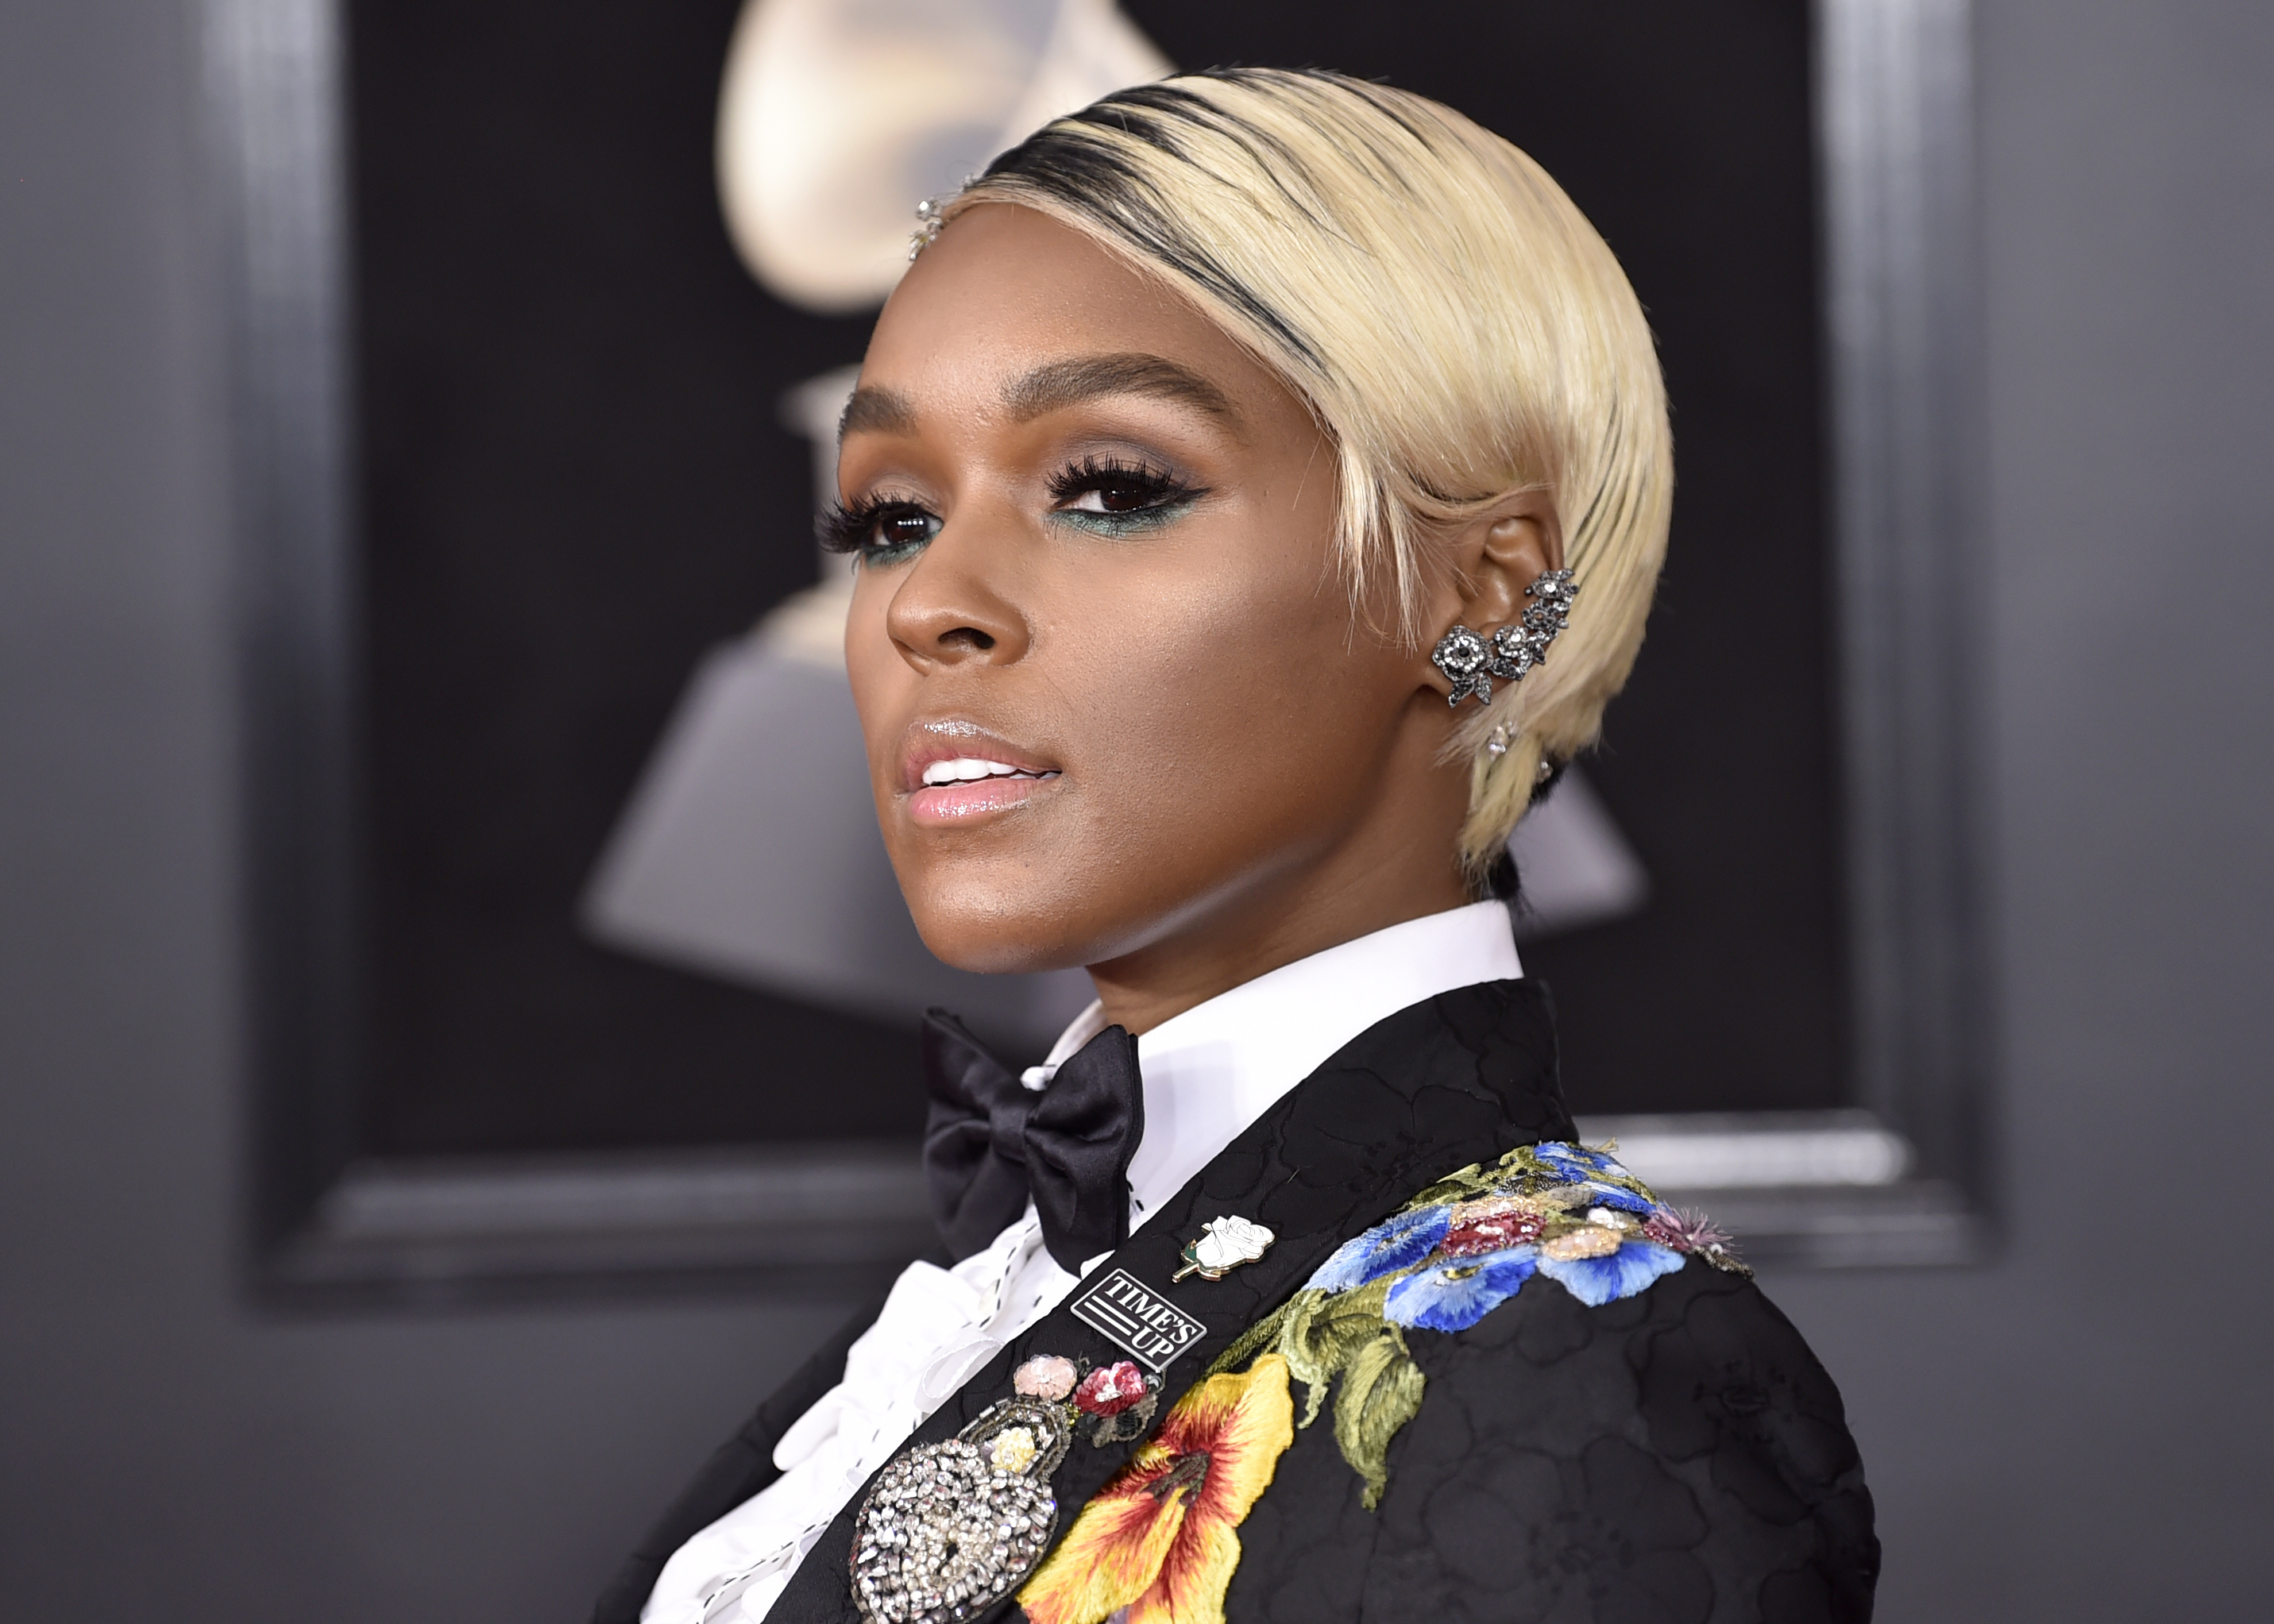 <div class='meta'><div class='origin-logo' data-origin='AP'></div><span class='caption-text' data-credit='Evan Agostini/Invision/AP'>Janelle Monae arrives at the 60th annual Grammy Awards at Madison Square Garden on Sunday, Jan. 28, 2018, in New York.</span></div>